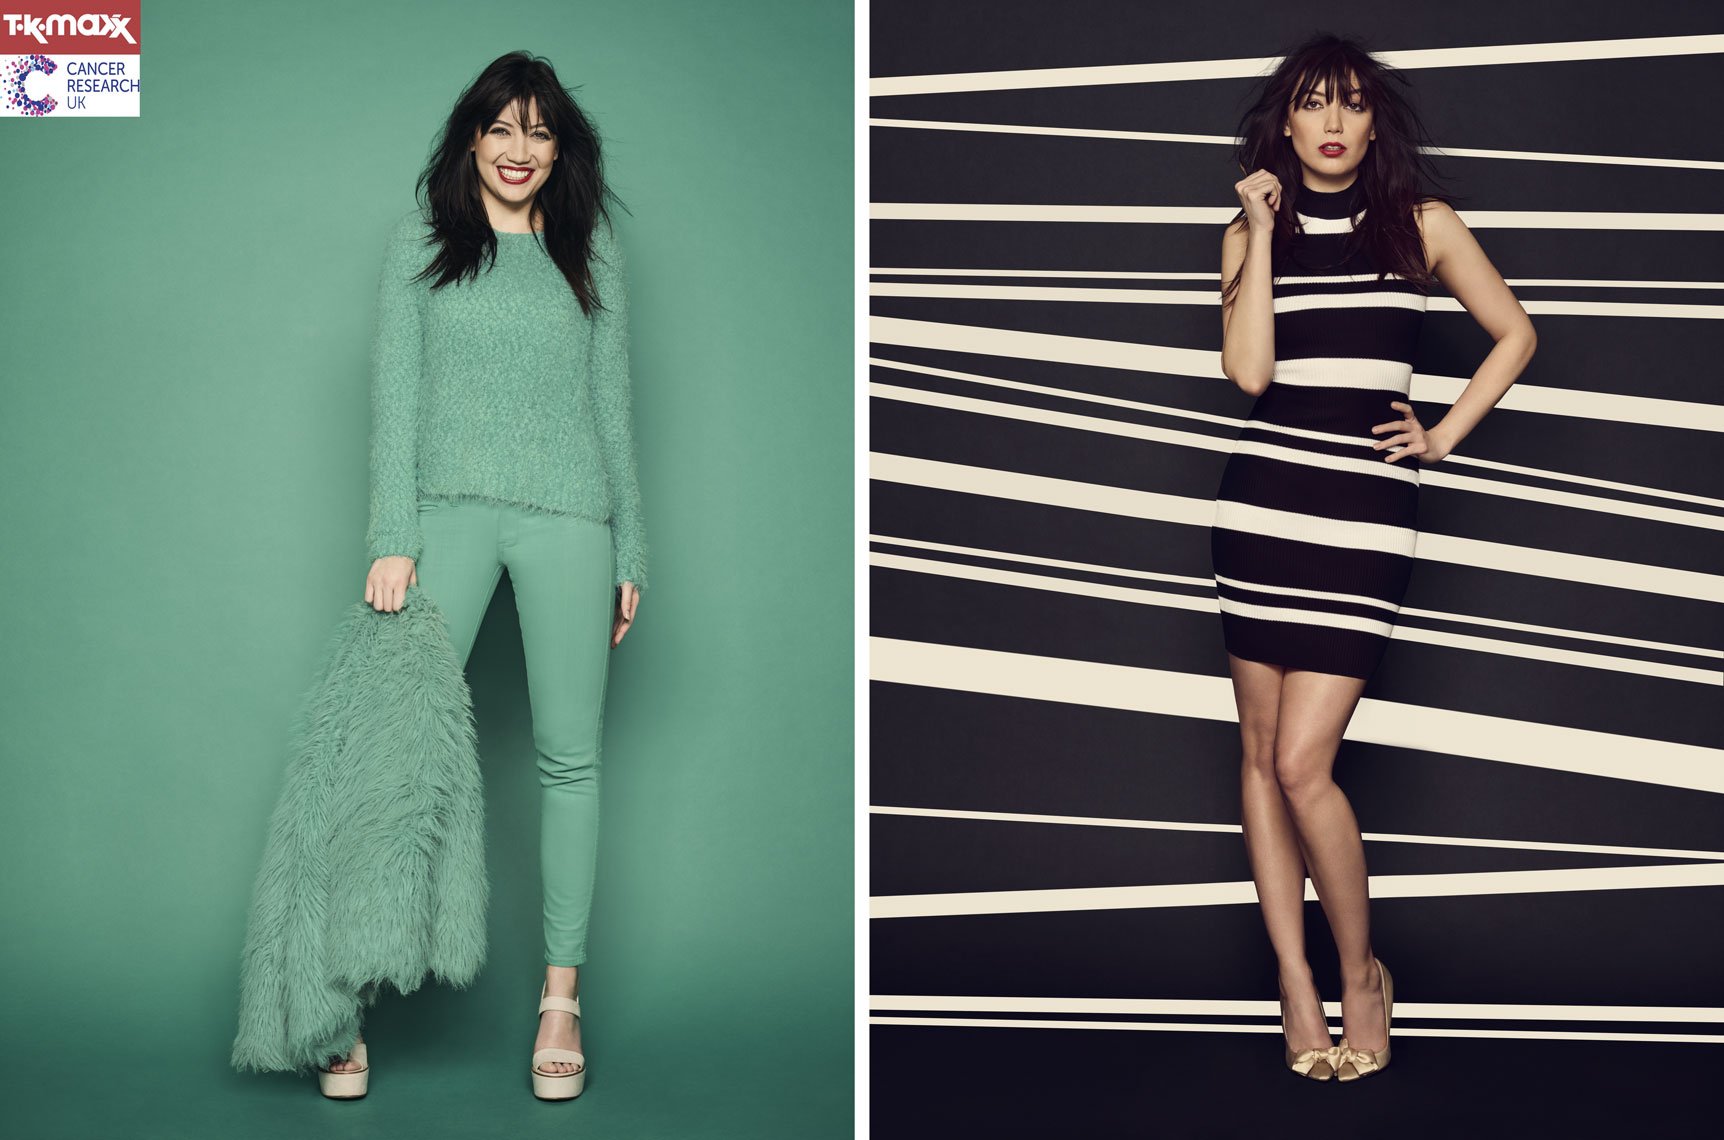 issie-gibbons-fashion-stylist-jason-bell-tk-maxx-cancer-research-uk-daisy-lowe-GUYCFG-turquoise